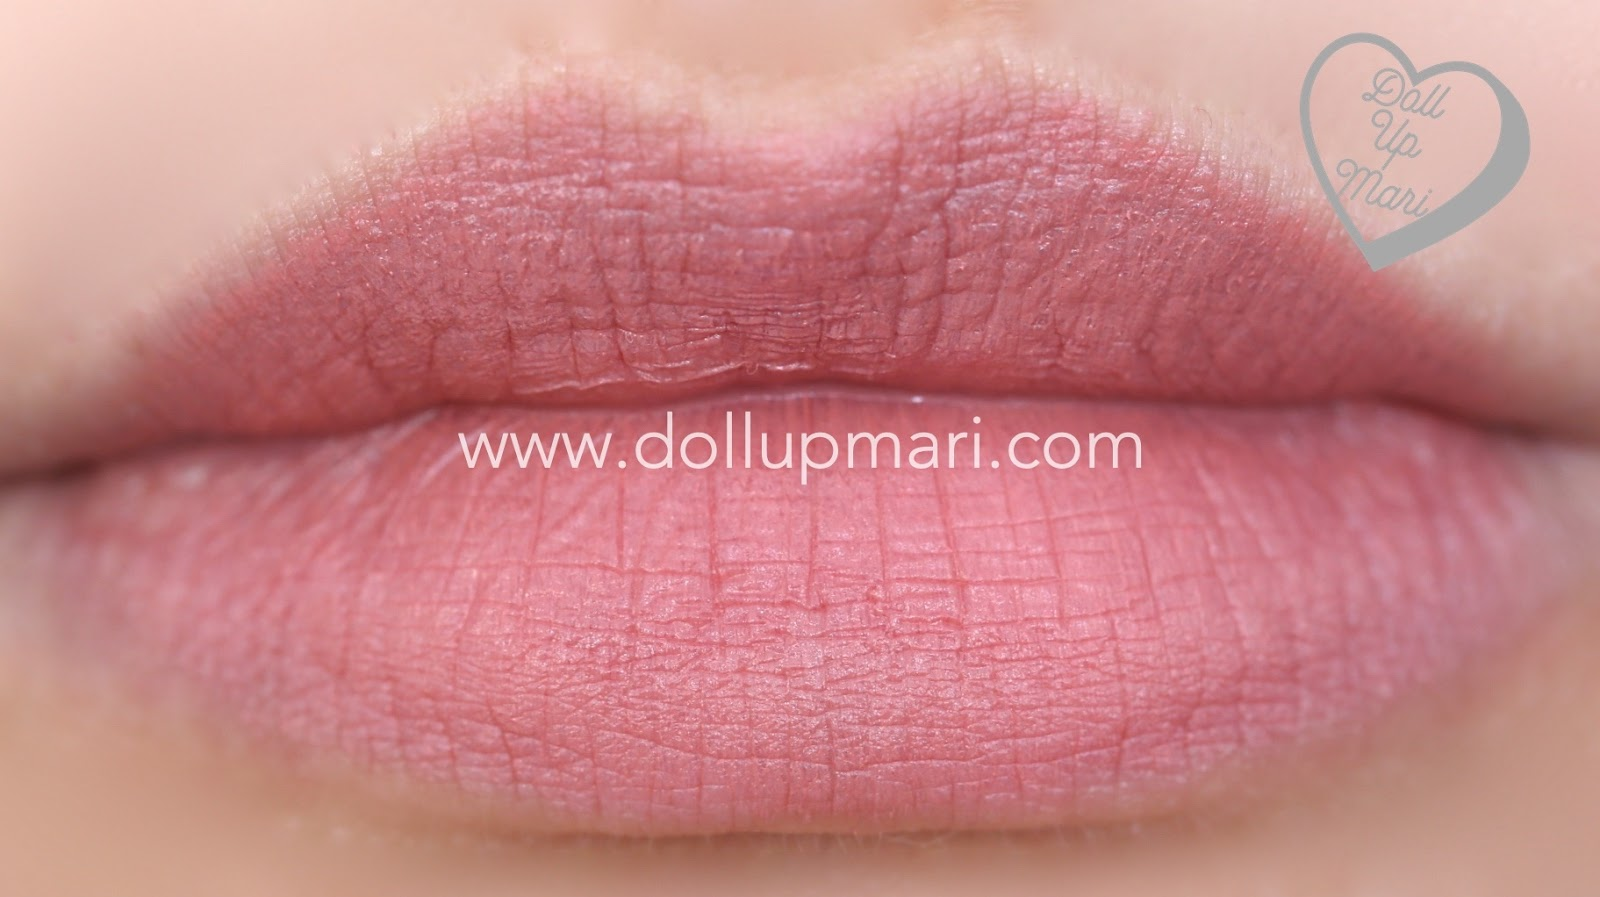 Avon Perfectly Matte Nudes Lipstick: Pretty new nudes from